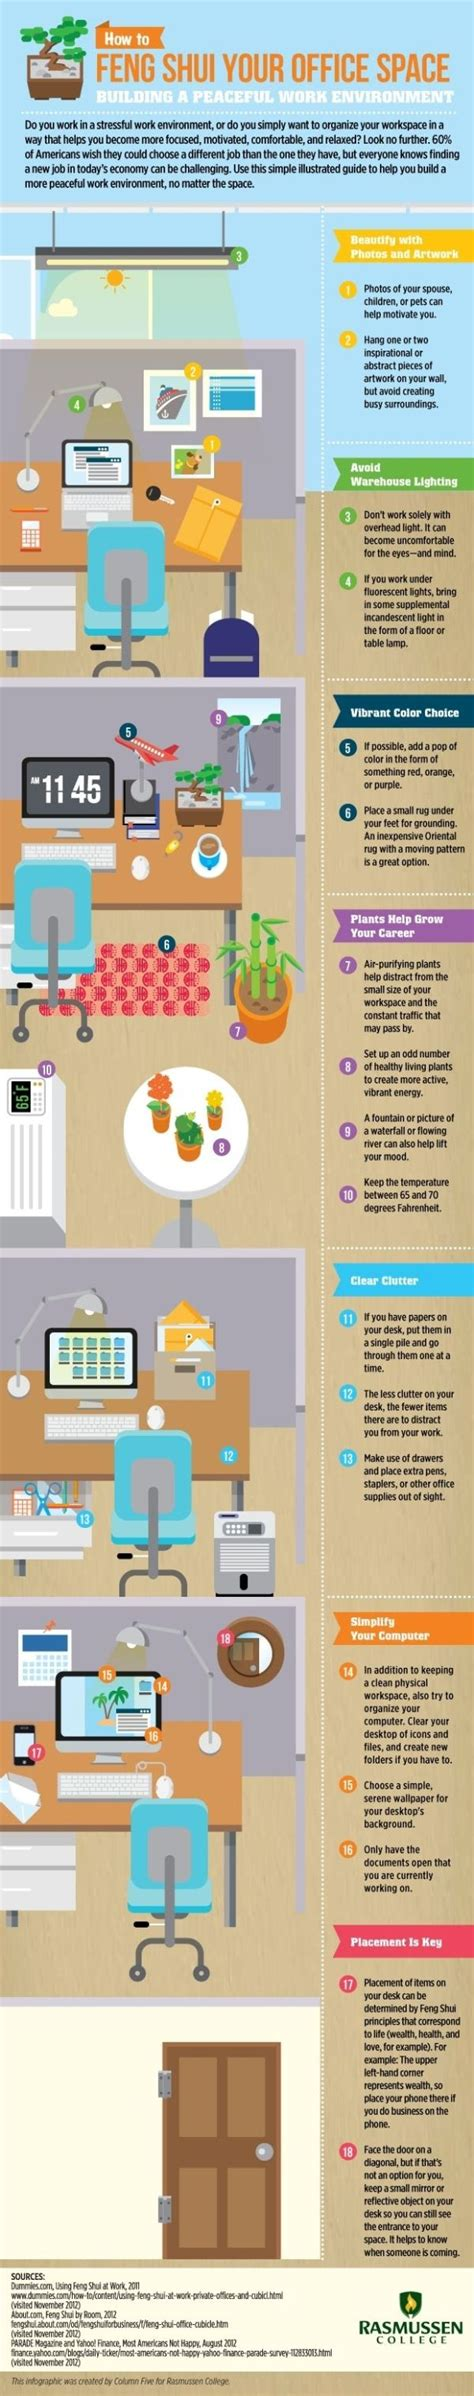 Office Desk Feng Shui How To Feng Shui Your Office Space By Feng Shui Pinterest Feng Shui Office Spaces